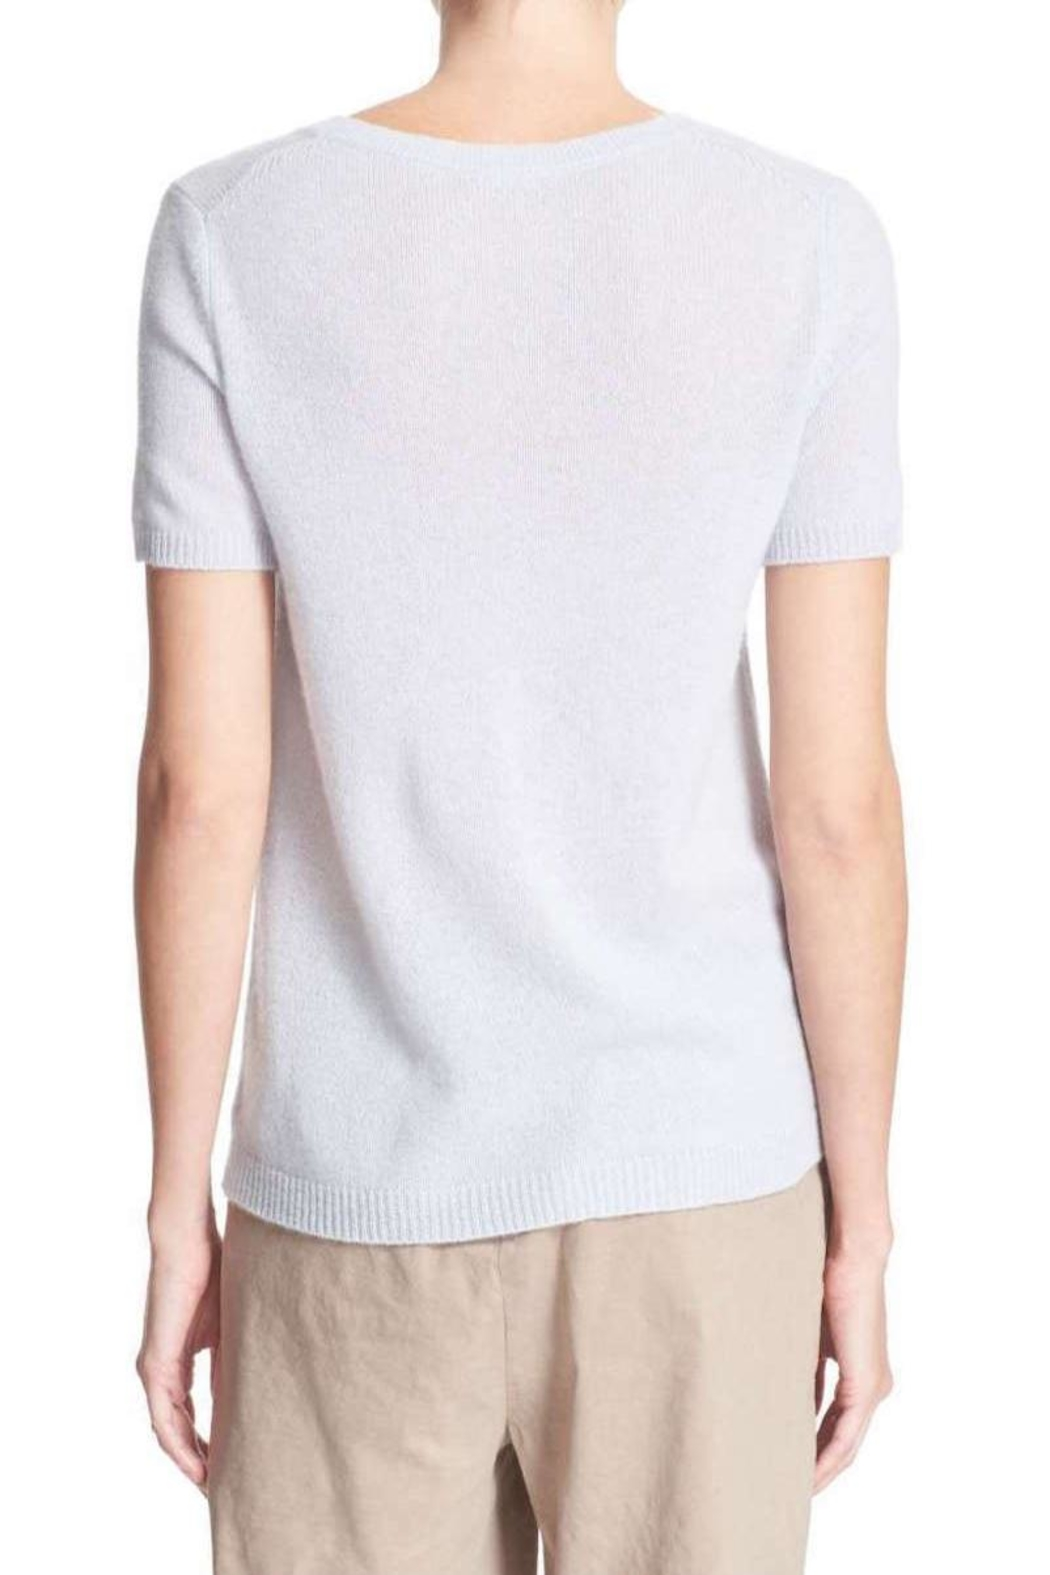 Theory Featherweight Cashmere Sweater - Front Full Image